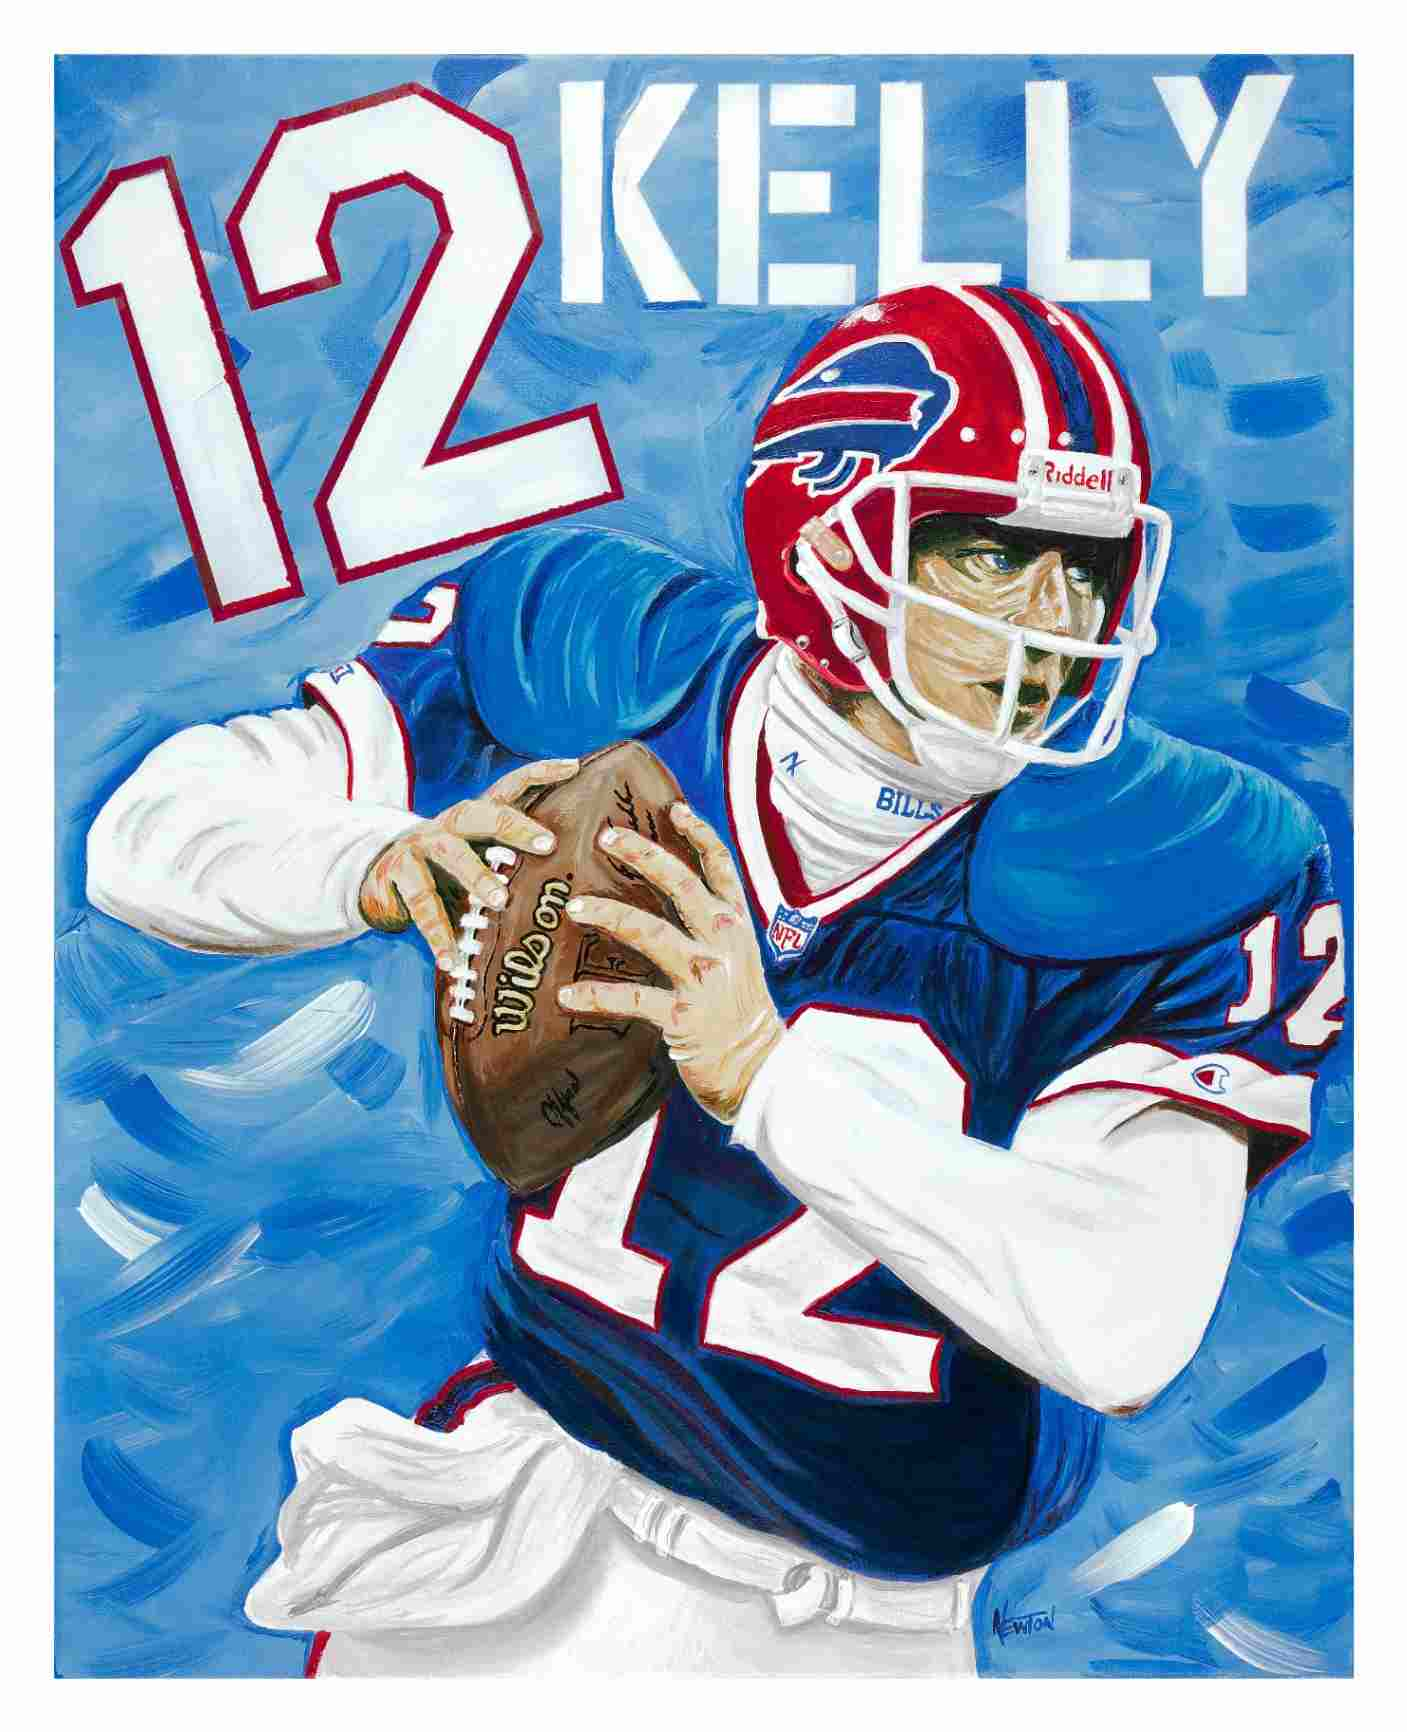 custom portrait painting commission from photo of a sports football player by an artist